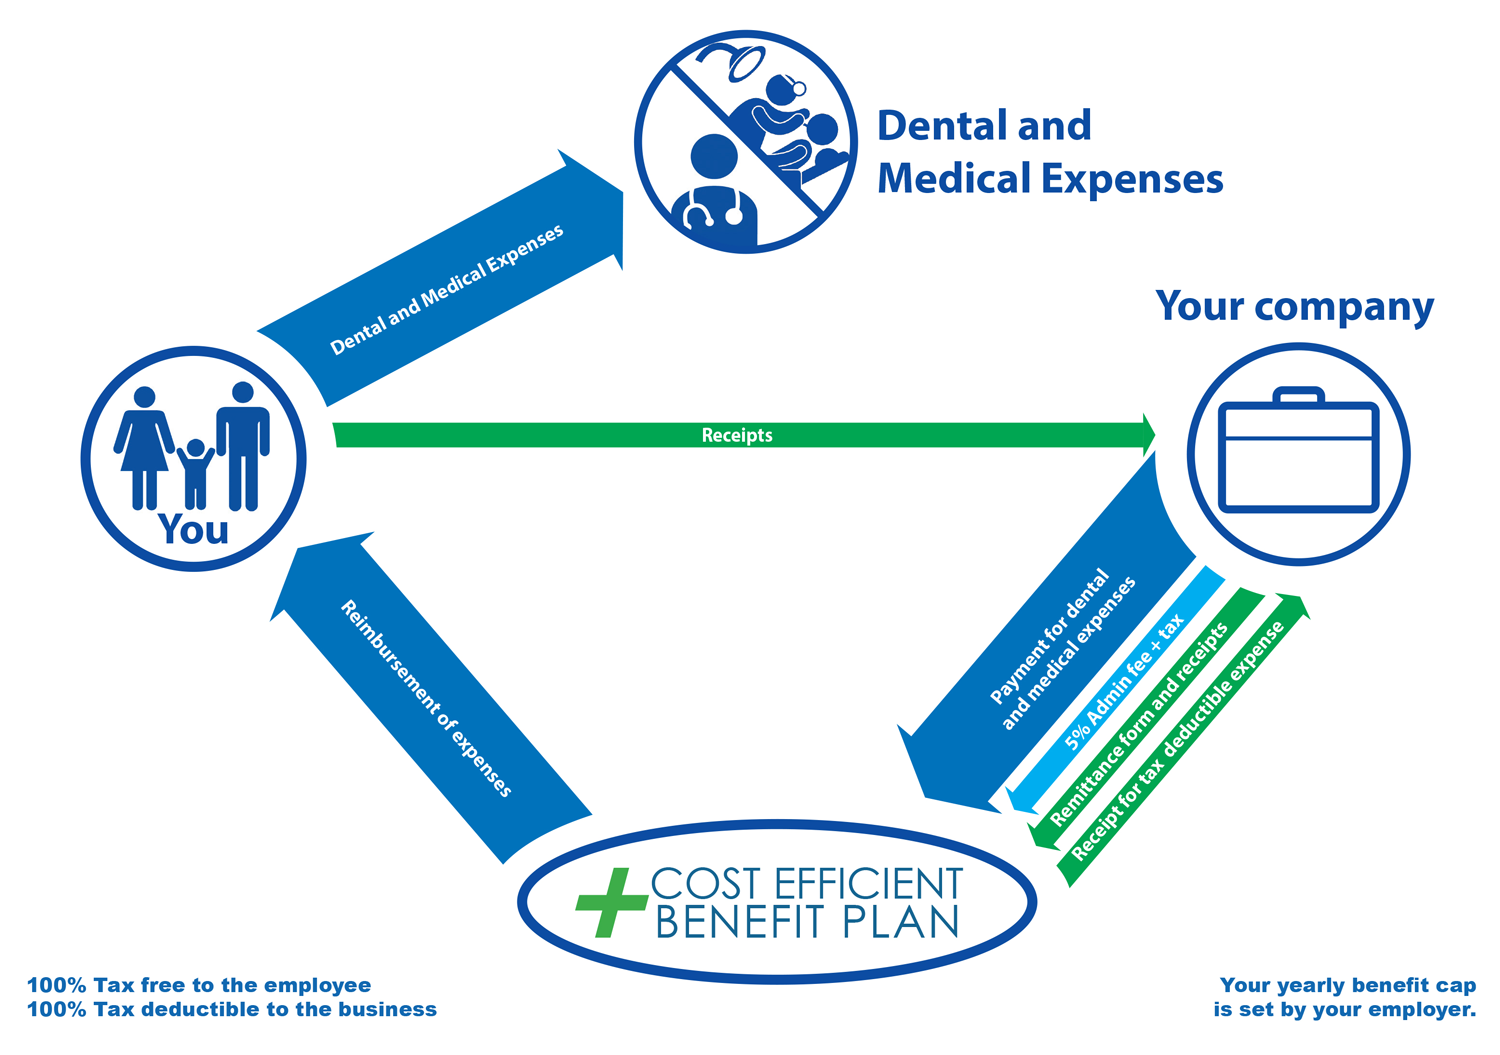 How Cost Efficient Benefit Plan Works